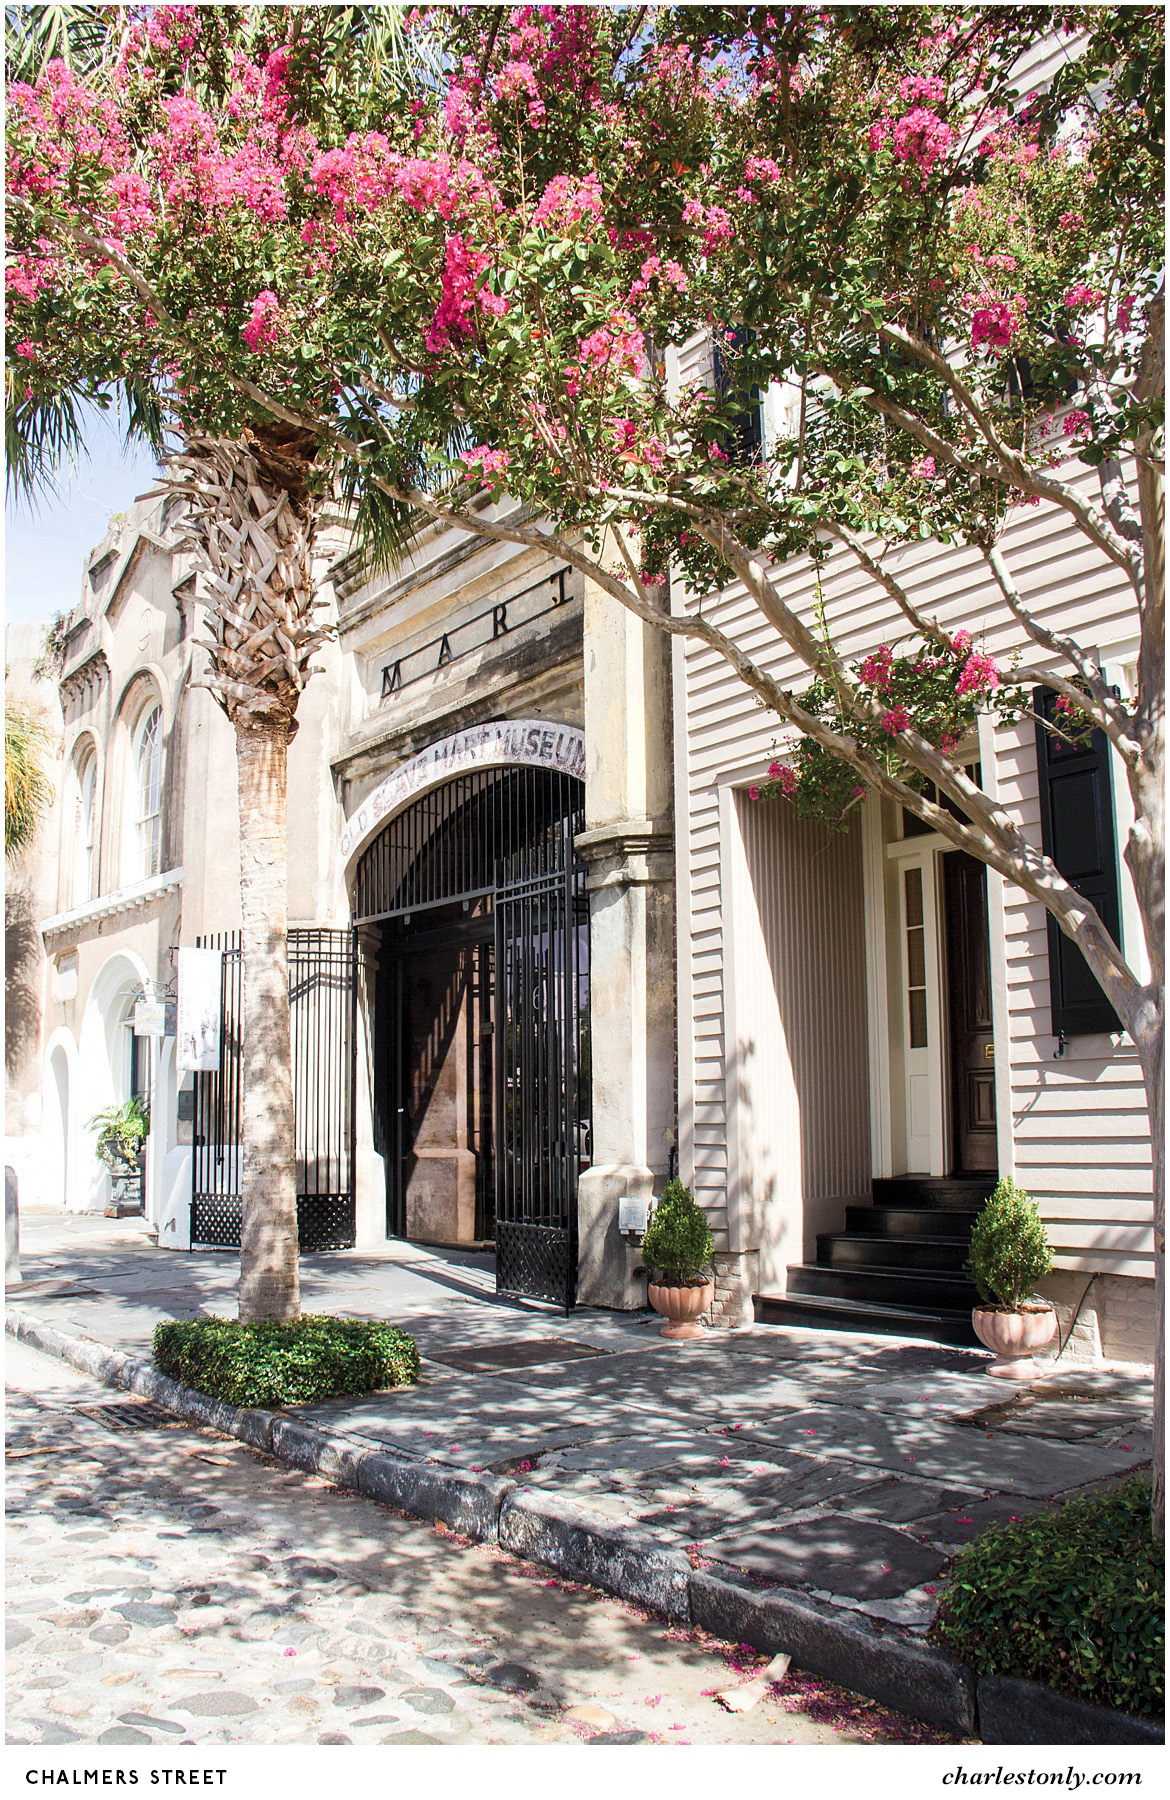 8 Iconic Streets to Explore in Charleston - Explore